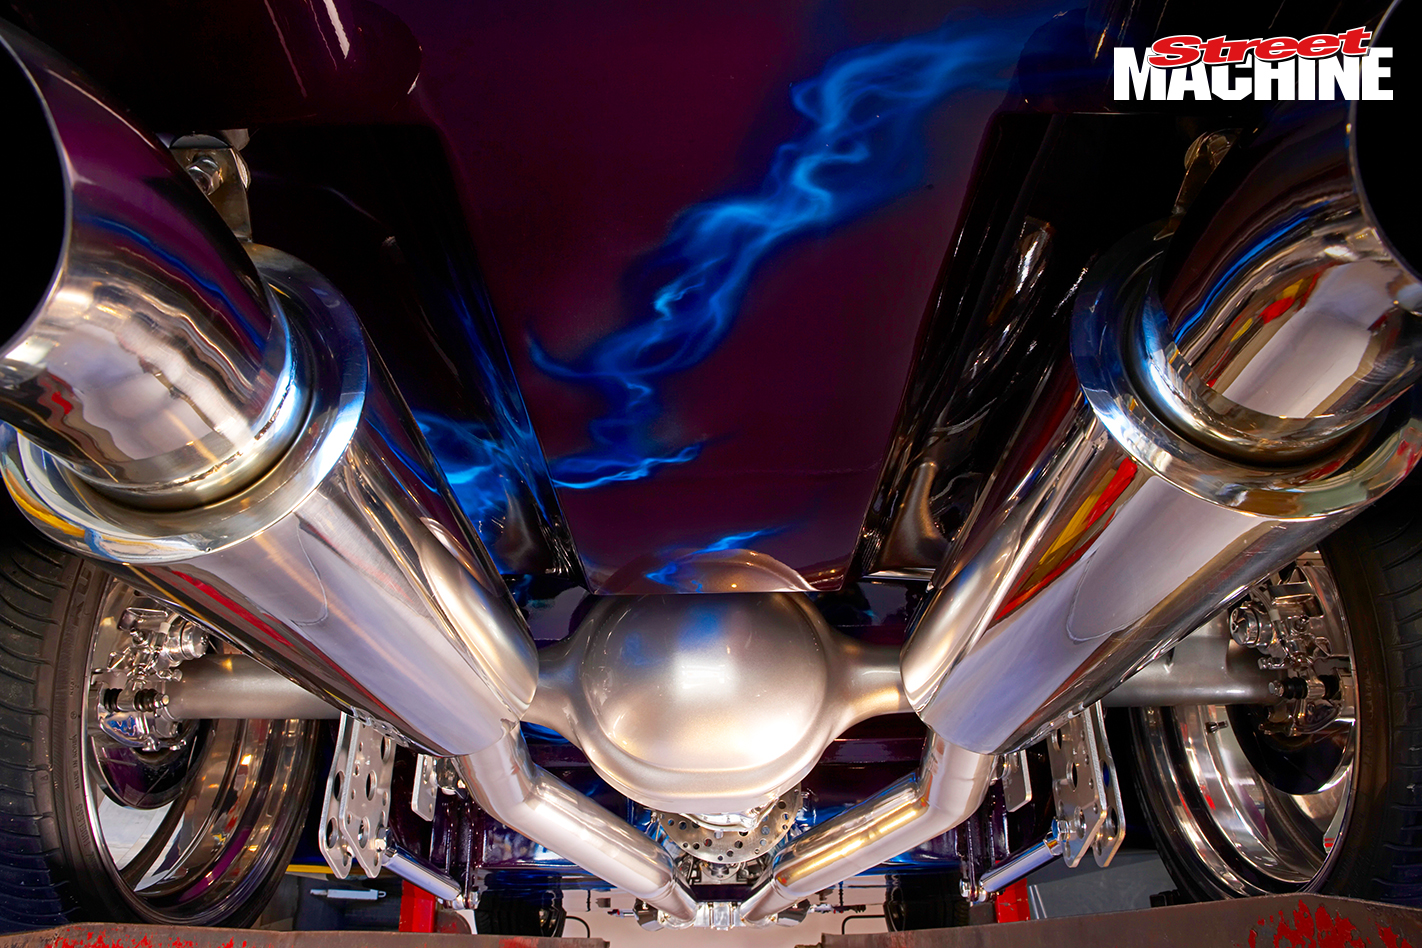 Ford XY Falcon GT Blown 12 Nw